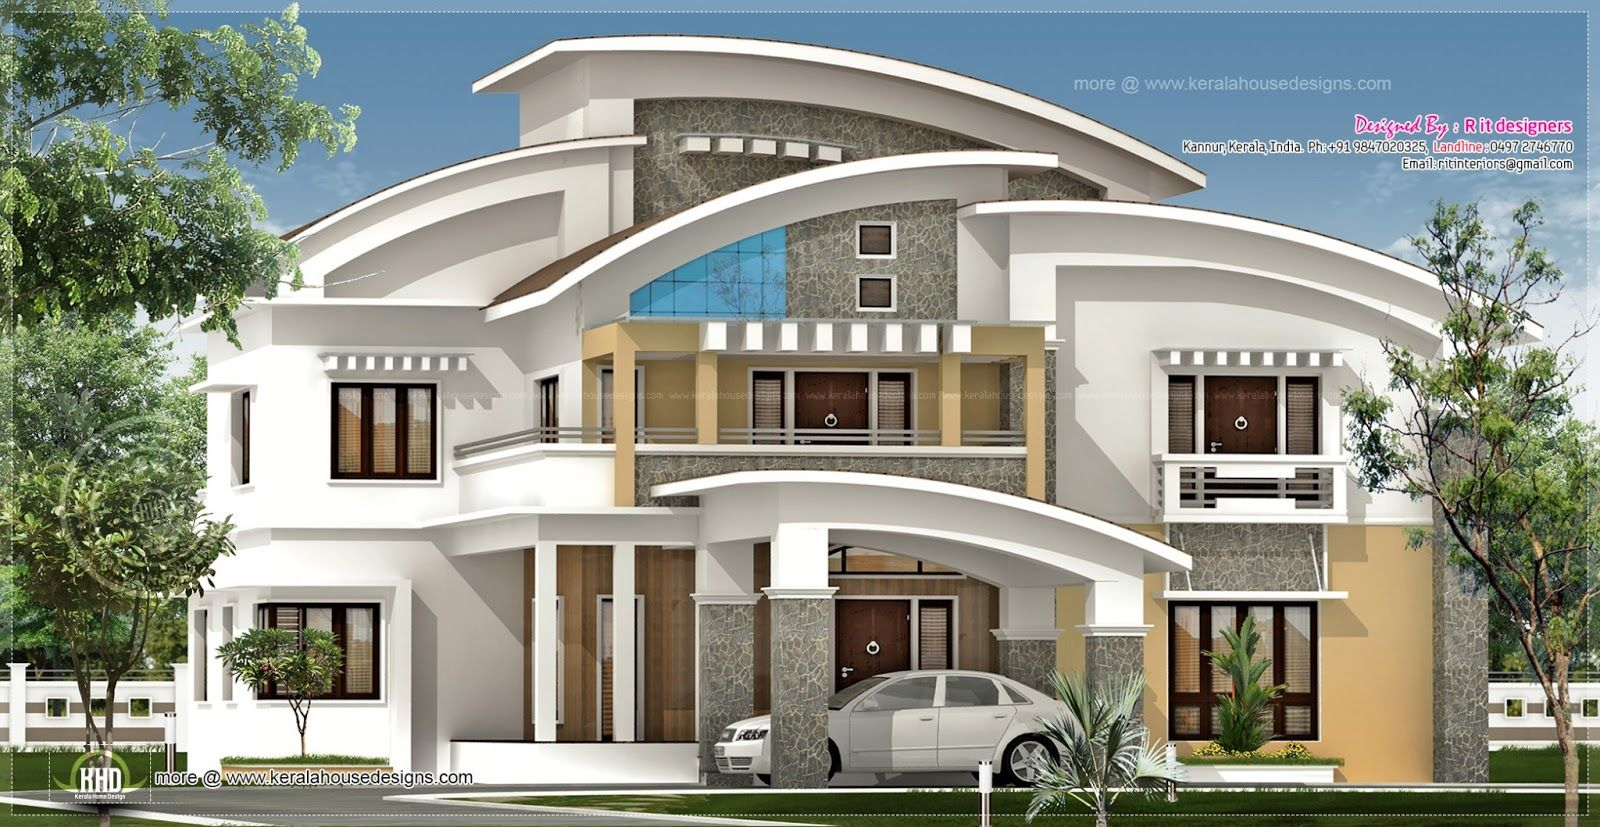 Awesome luxury homes plans 8 french country luxury home for Luxury home models